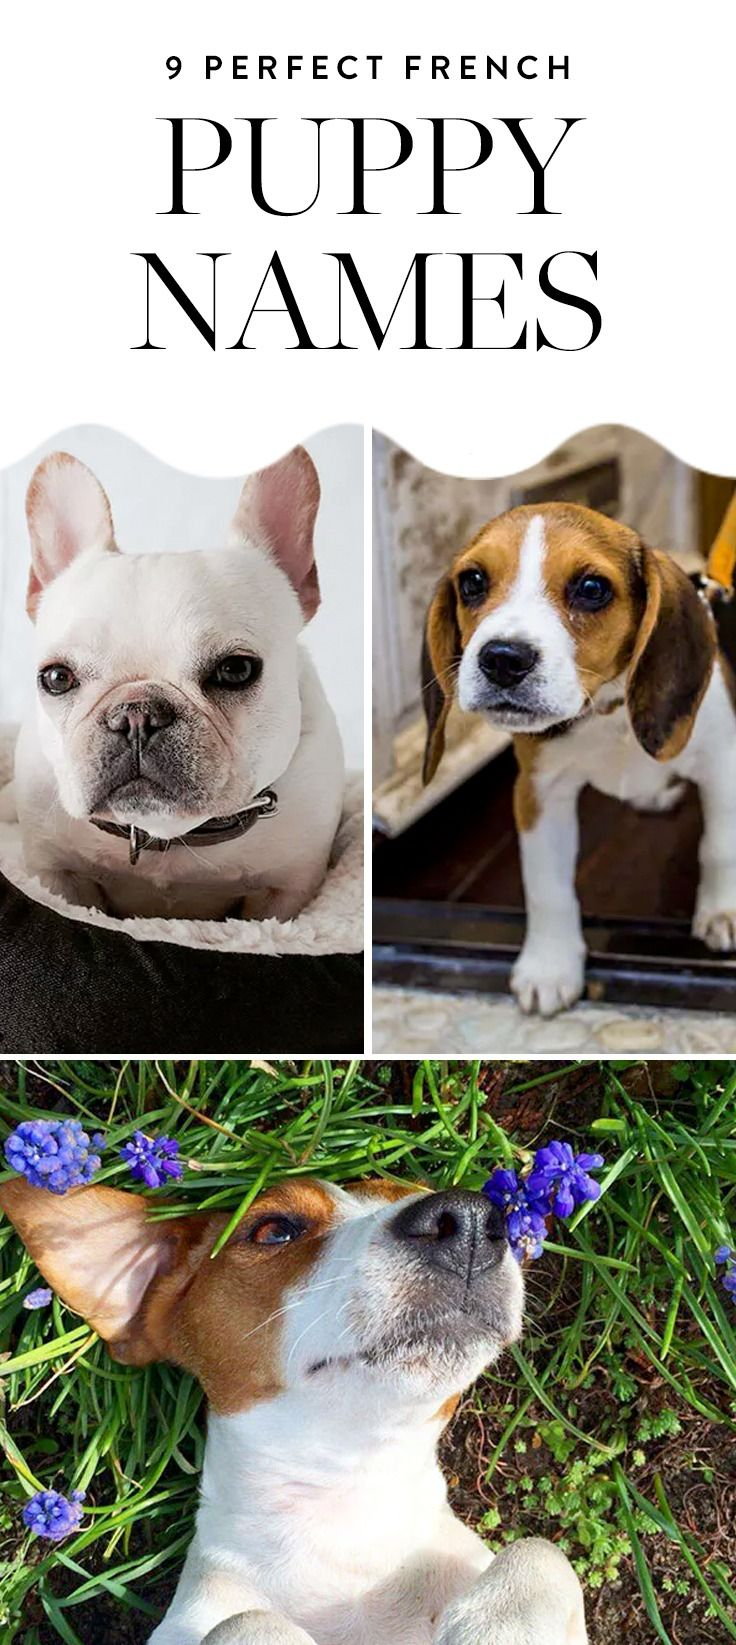 9 French Puppy Names That Are Perfect for Your Adorable